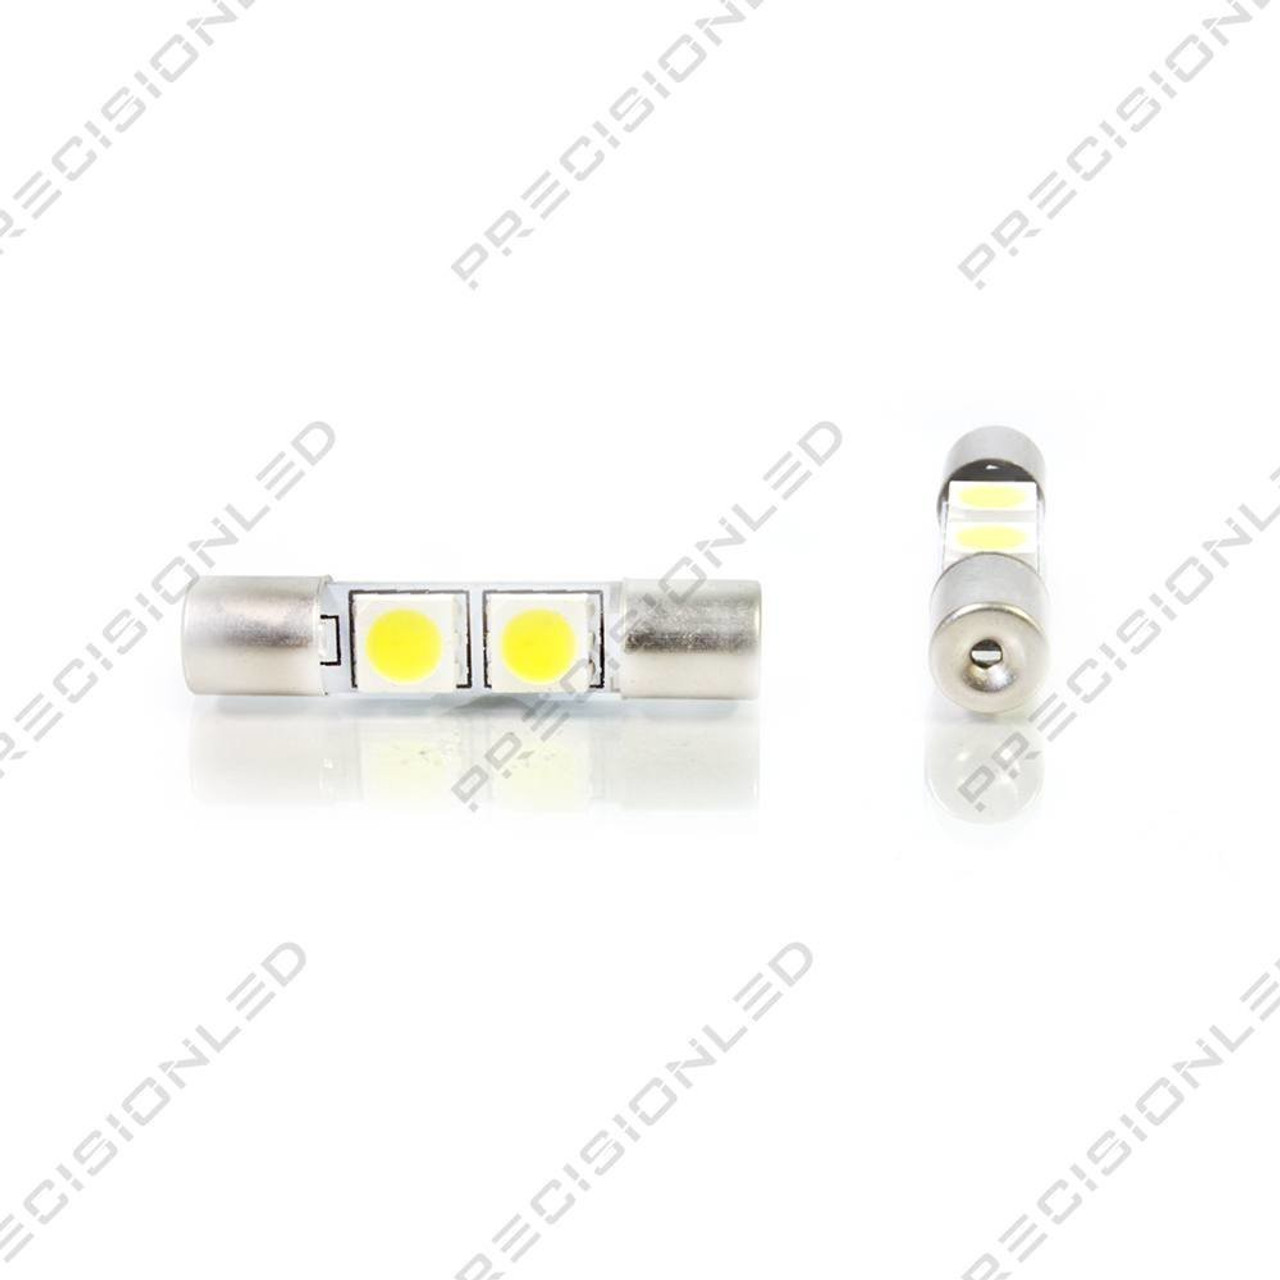 29mm x 5mm Vanity Mirror 5050 2 SMD LED